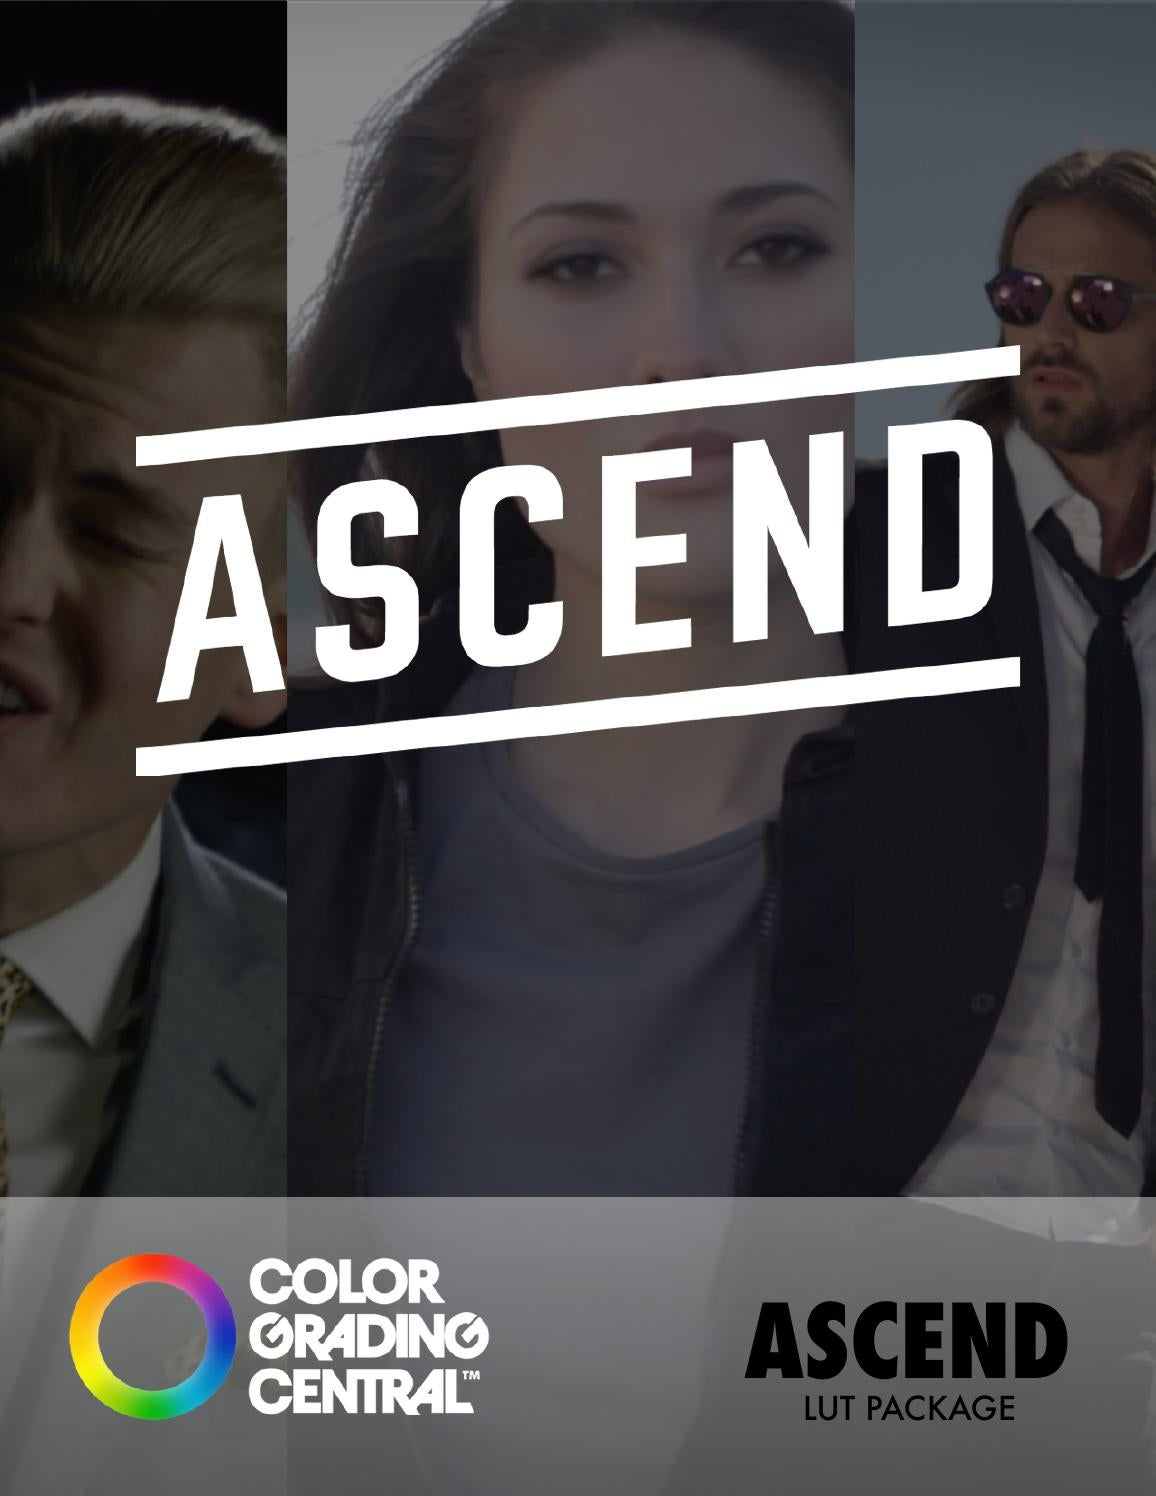 Color Grading Central - Ascend LUTs Package - Free download